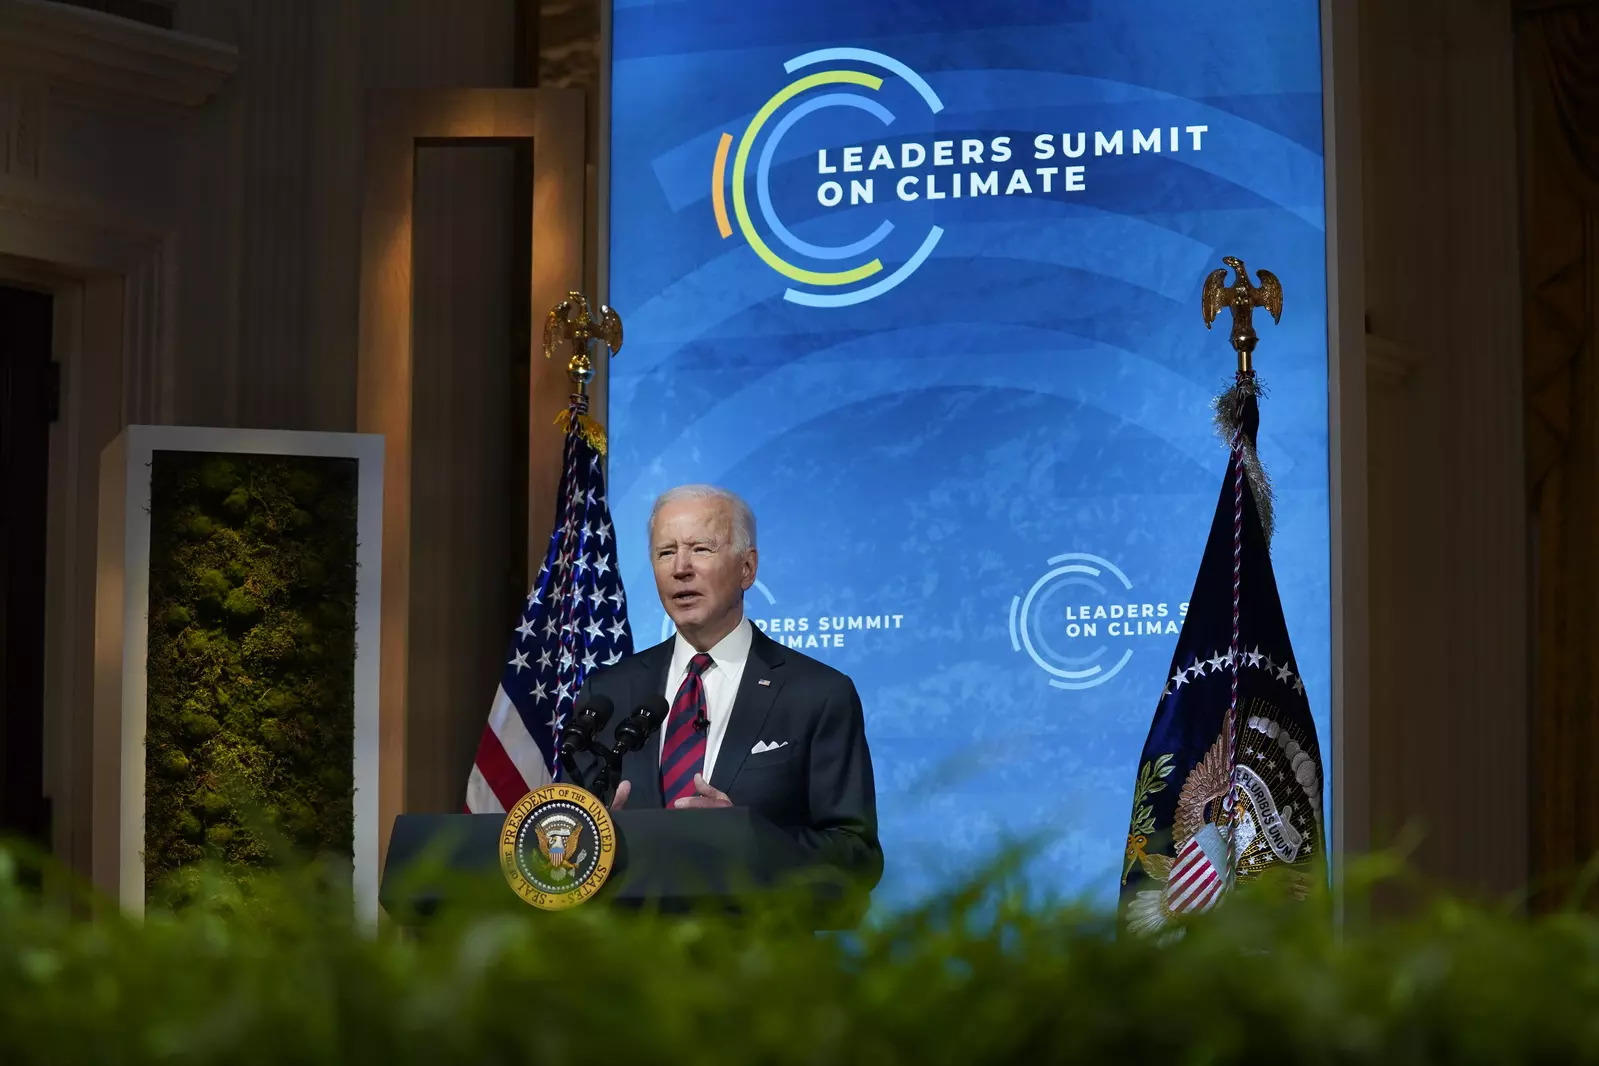 Go forth and spend: Call for action closes US climate summit